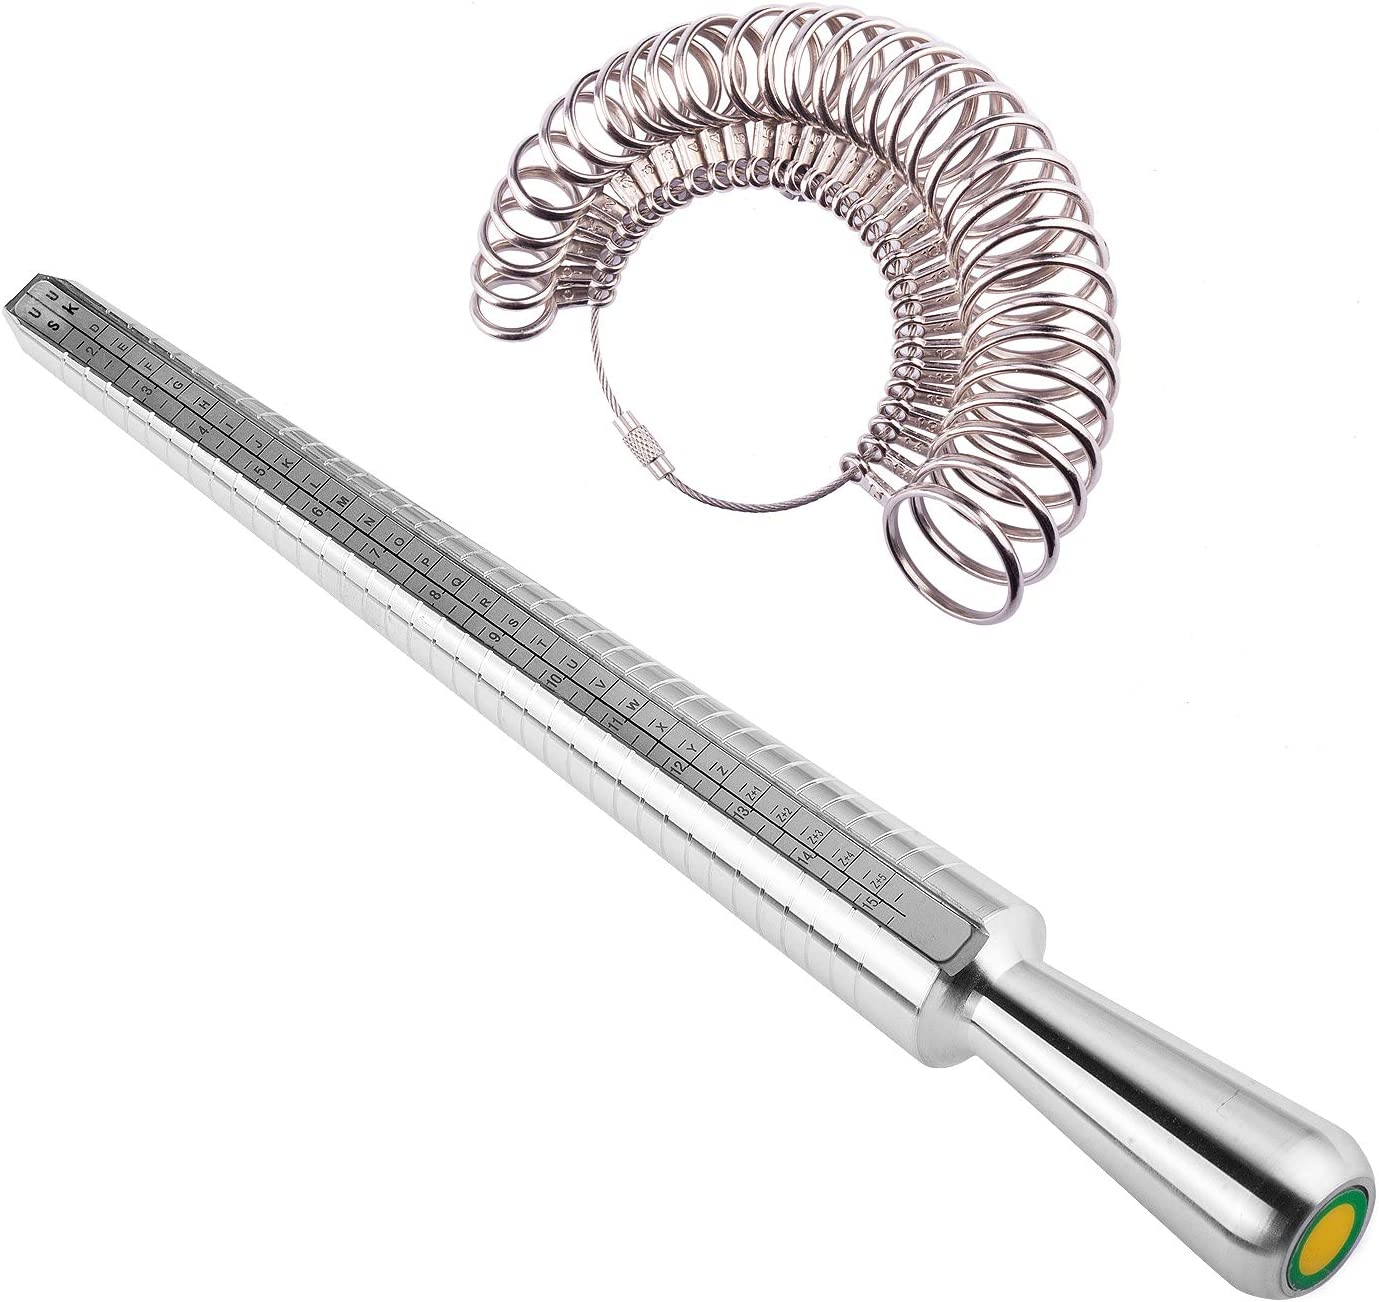 Ring stick for measuring and creation of rings